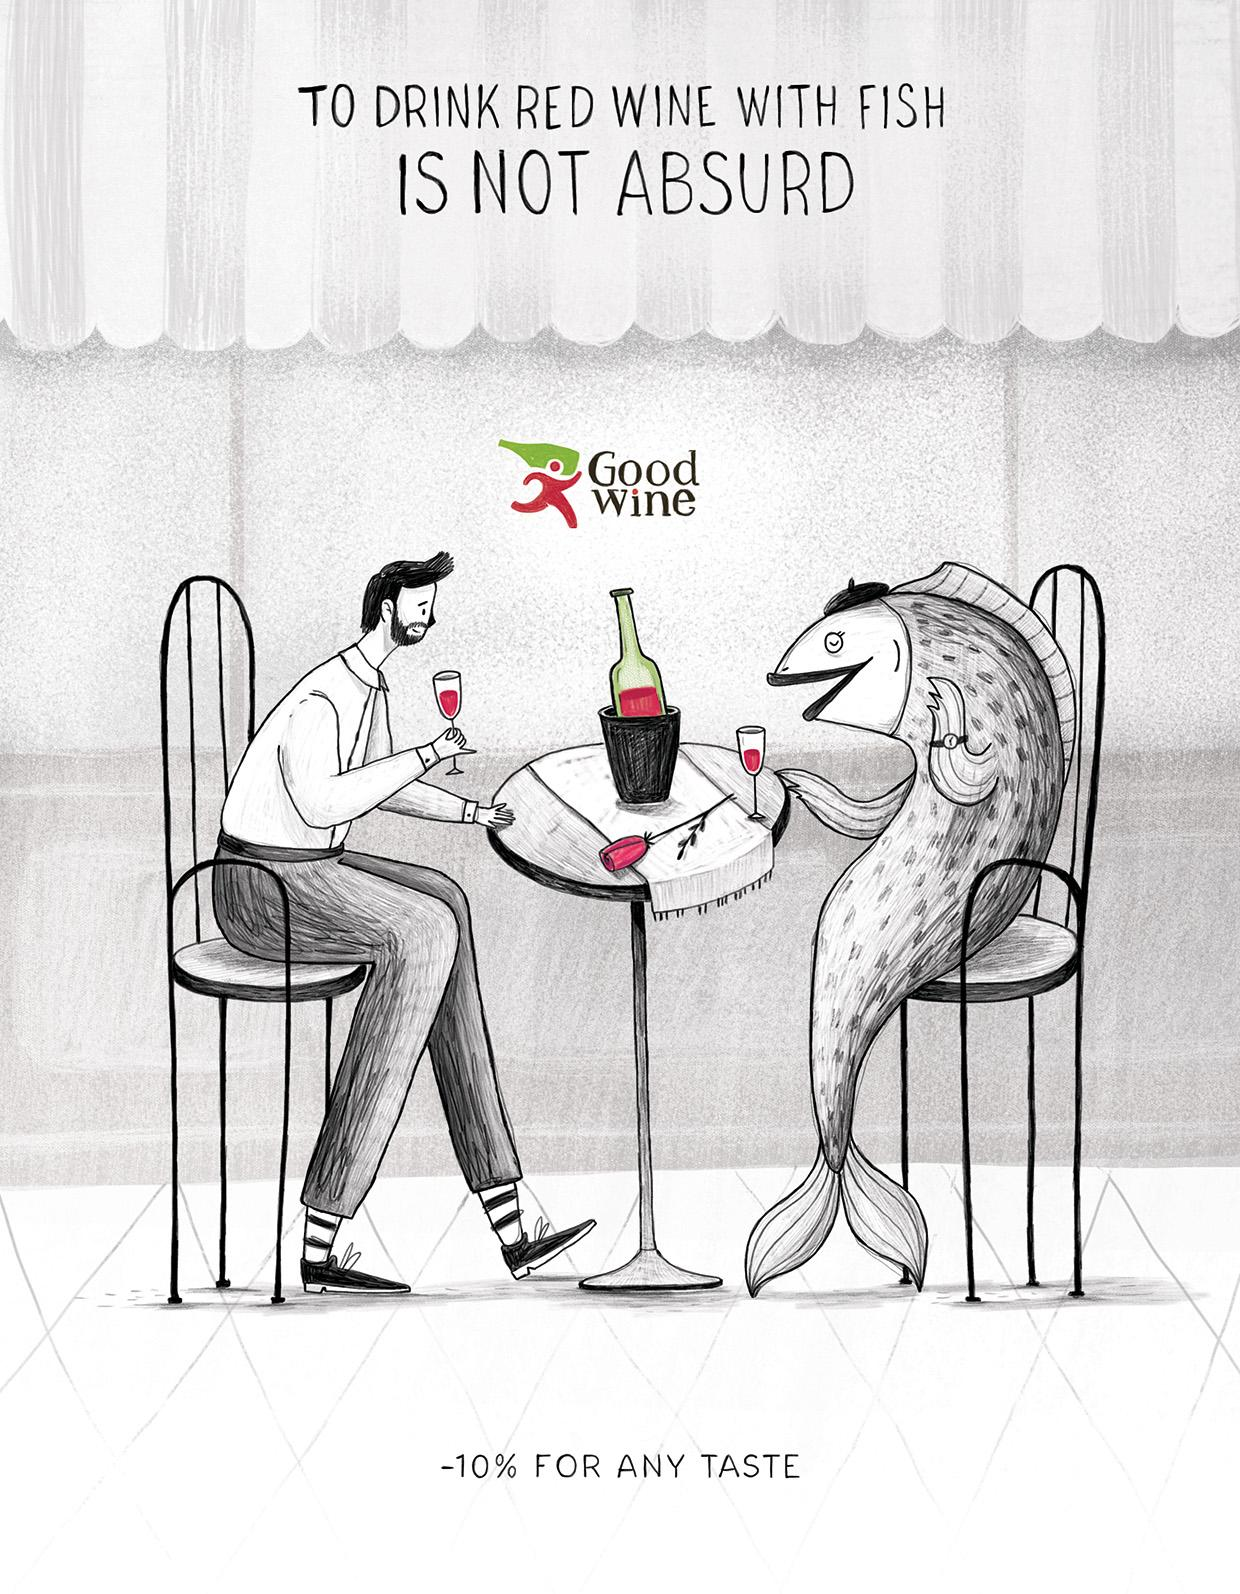 Good Wine Print Ad - To Drink Red Wine With Fish Is Not Absurd